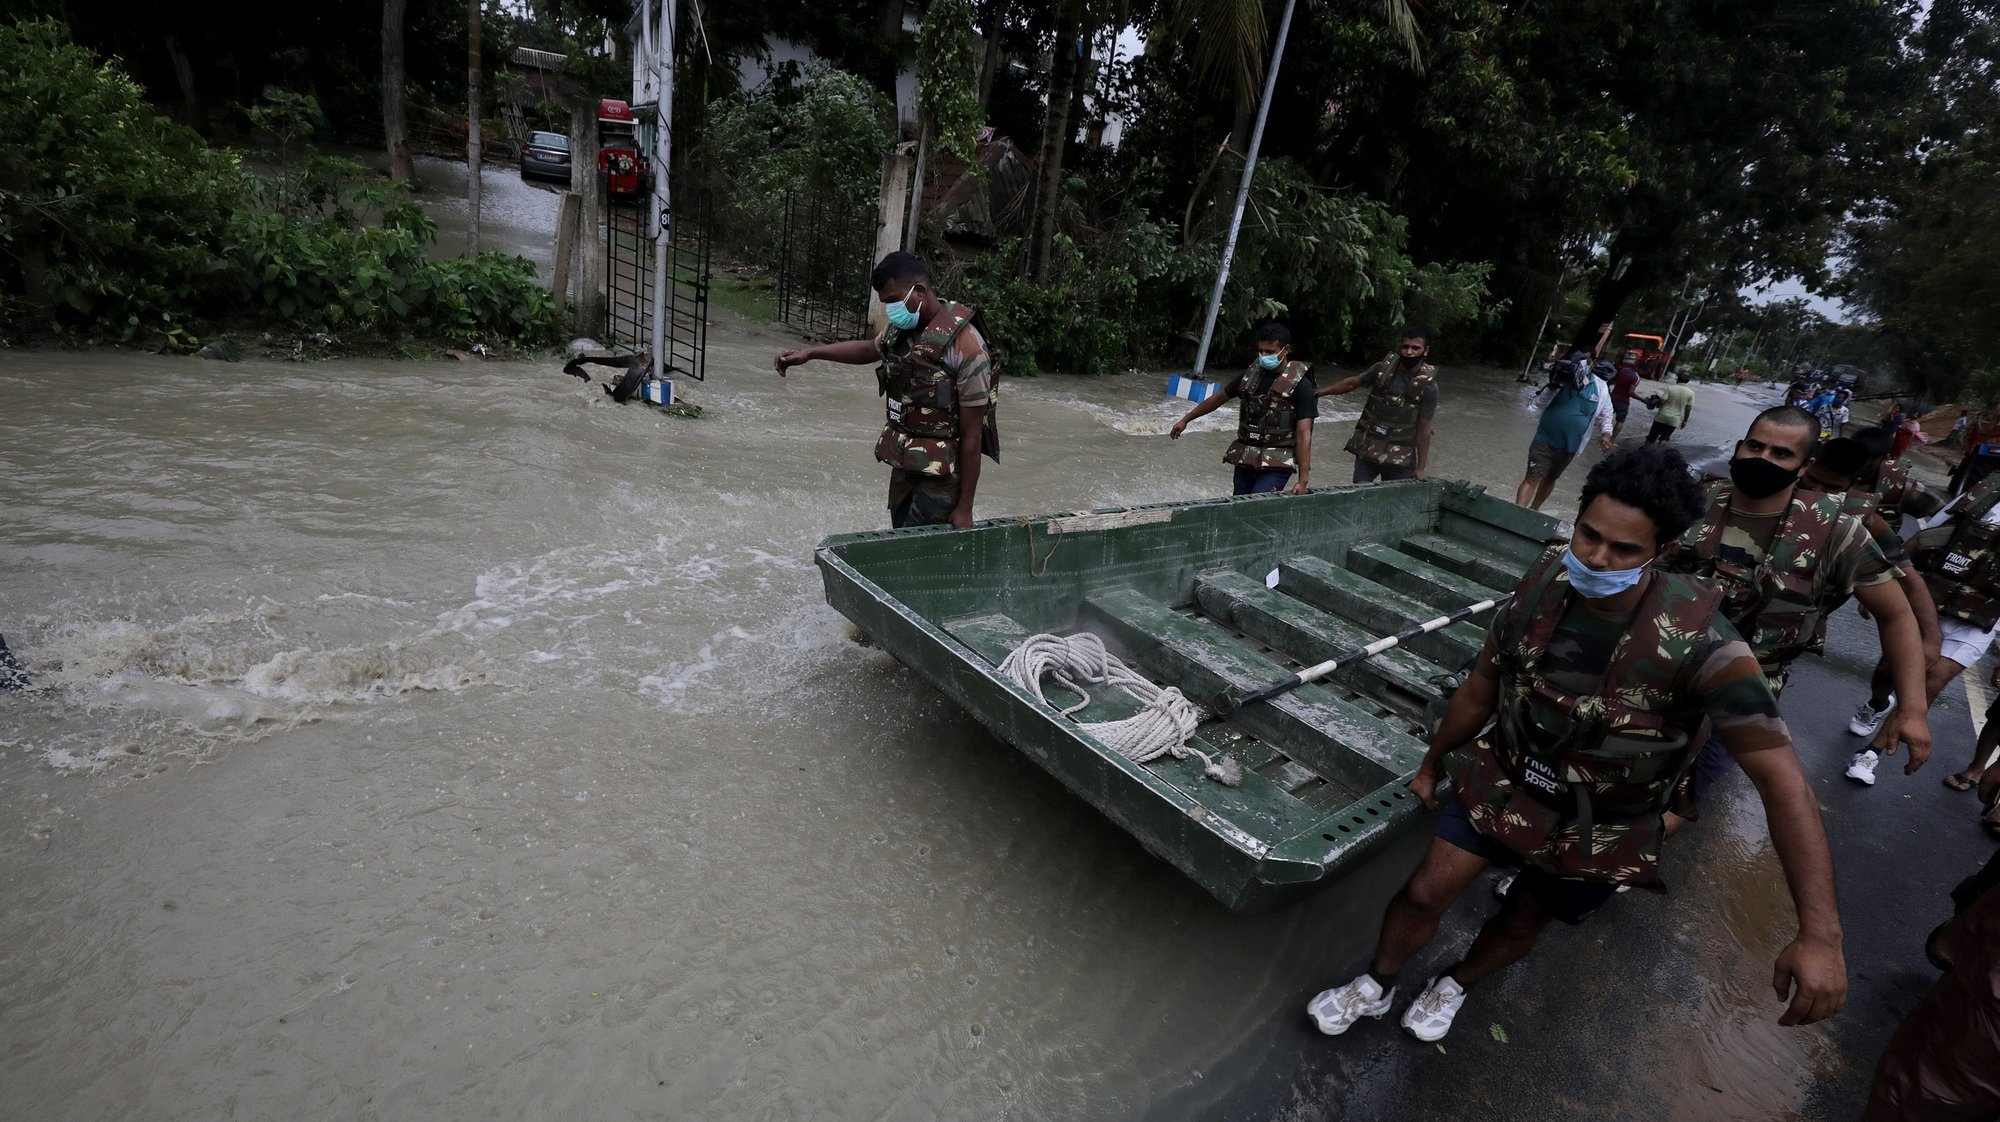 epa09228338 Indian Army personel carry a boat to rescue people amid floods as Cyclone Yaas makes landfall in Digha, near the Bay of Bengal, south of Kolkata, India, 26 May 2021. The Odisha and Bengal governments started the evacuation of at-risk areas, as Cyclone Yaas hits the eastern coast of India.  EPA/PIYAL ADHIKARY